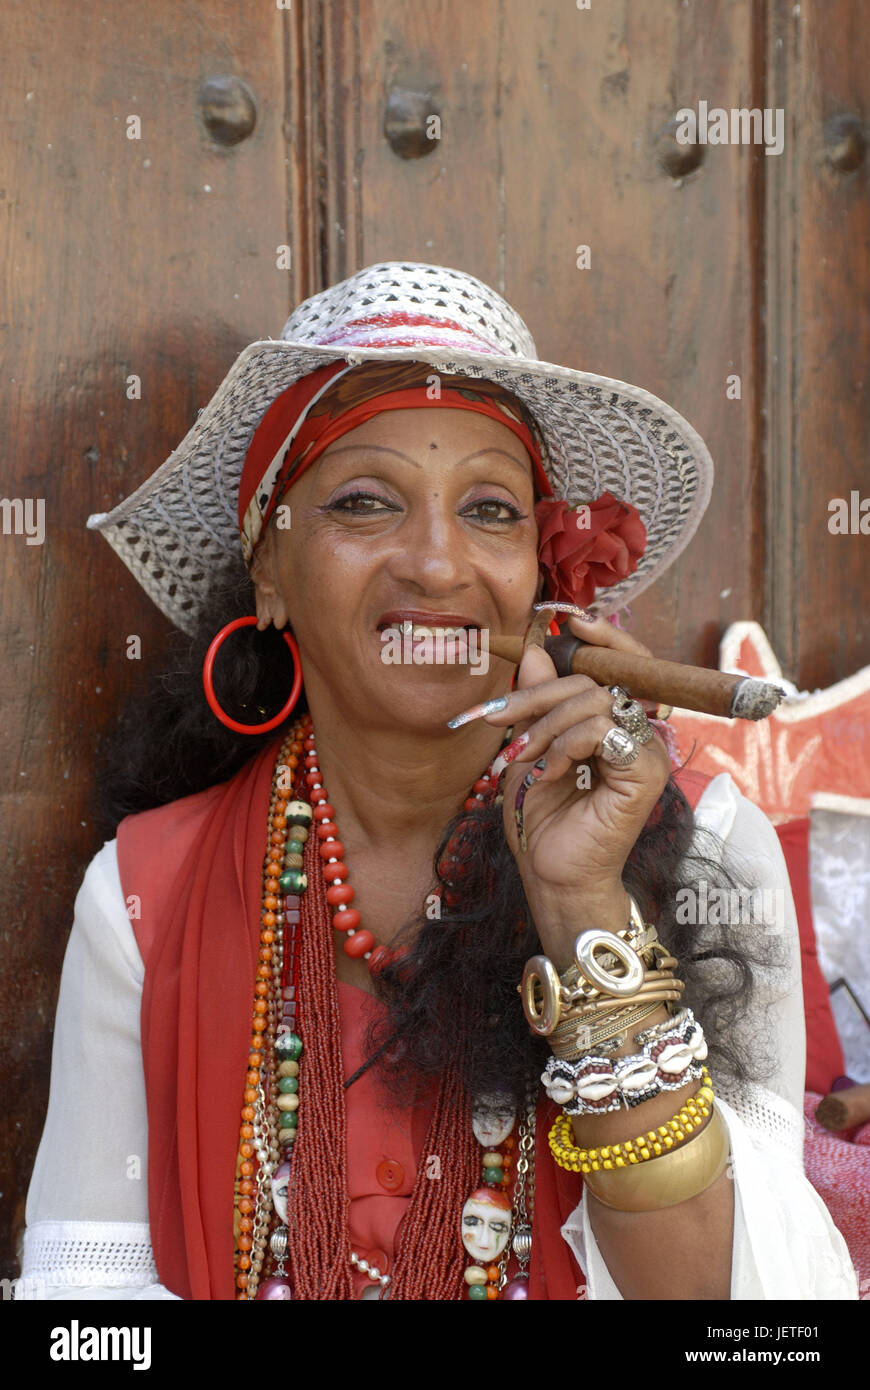 Cuba, Havana, Cuban, cigar, smoke, portrait, the Caribbean, island, person, locals, woman, care, solar hat, headgear, - Stock Image